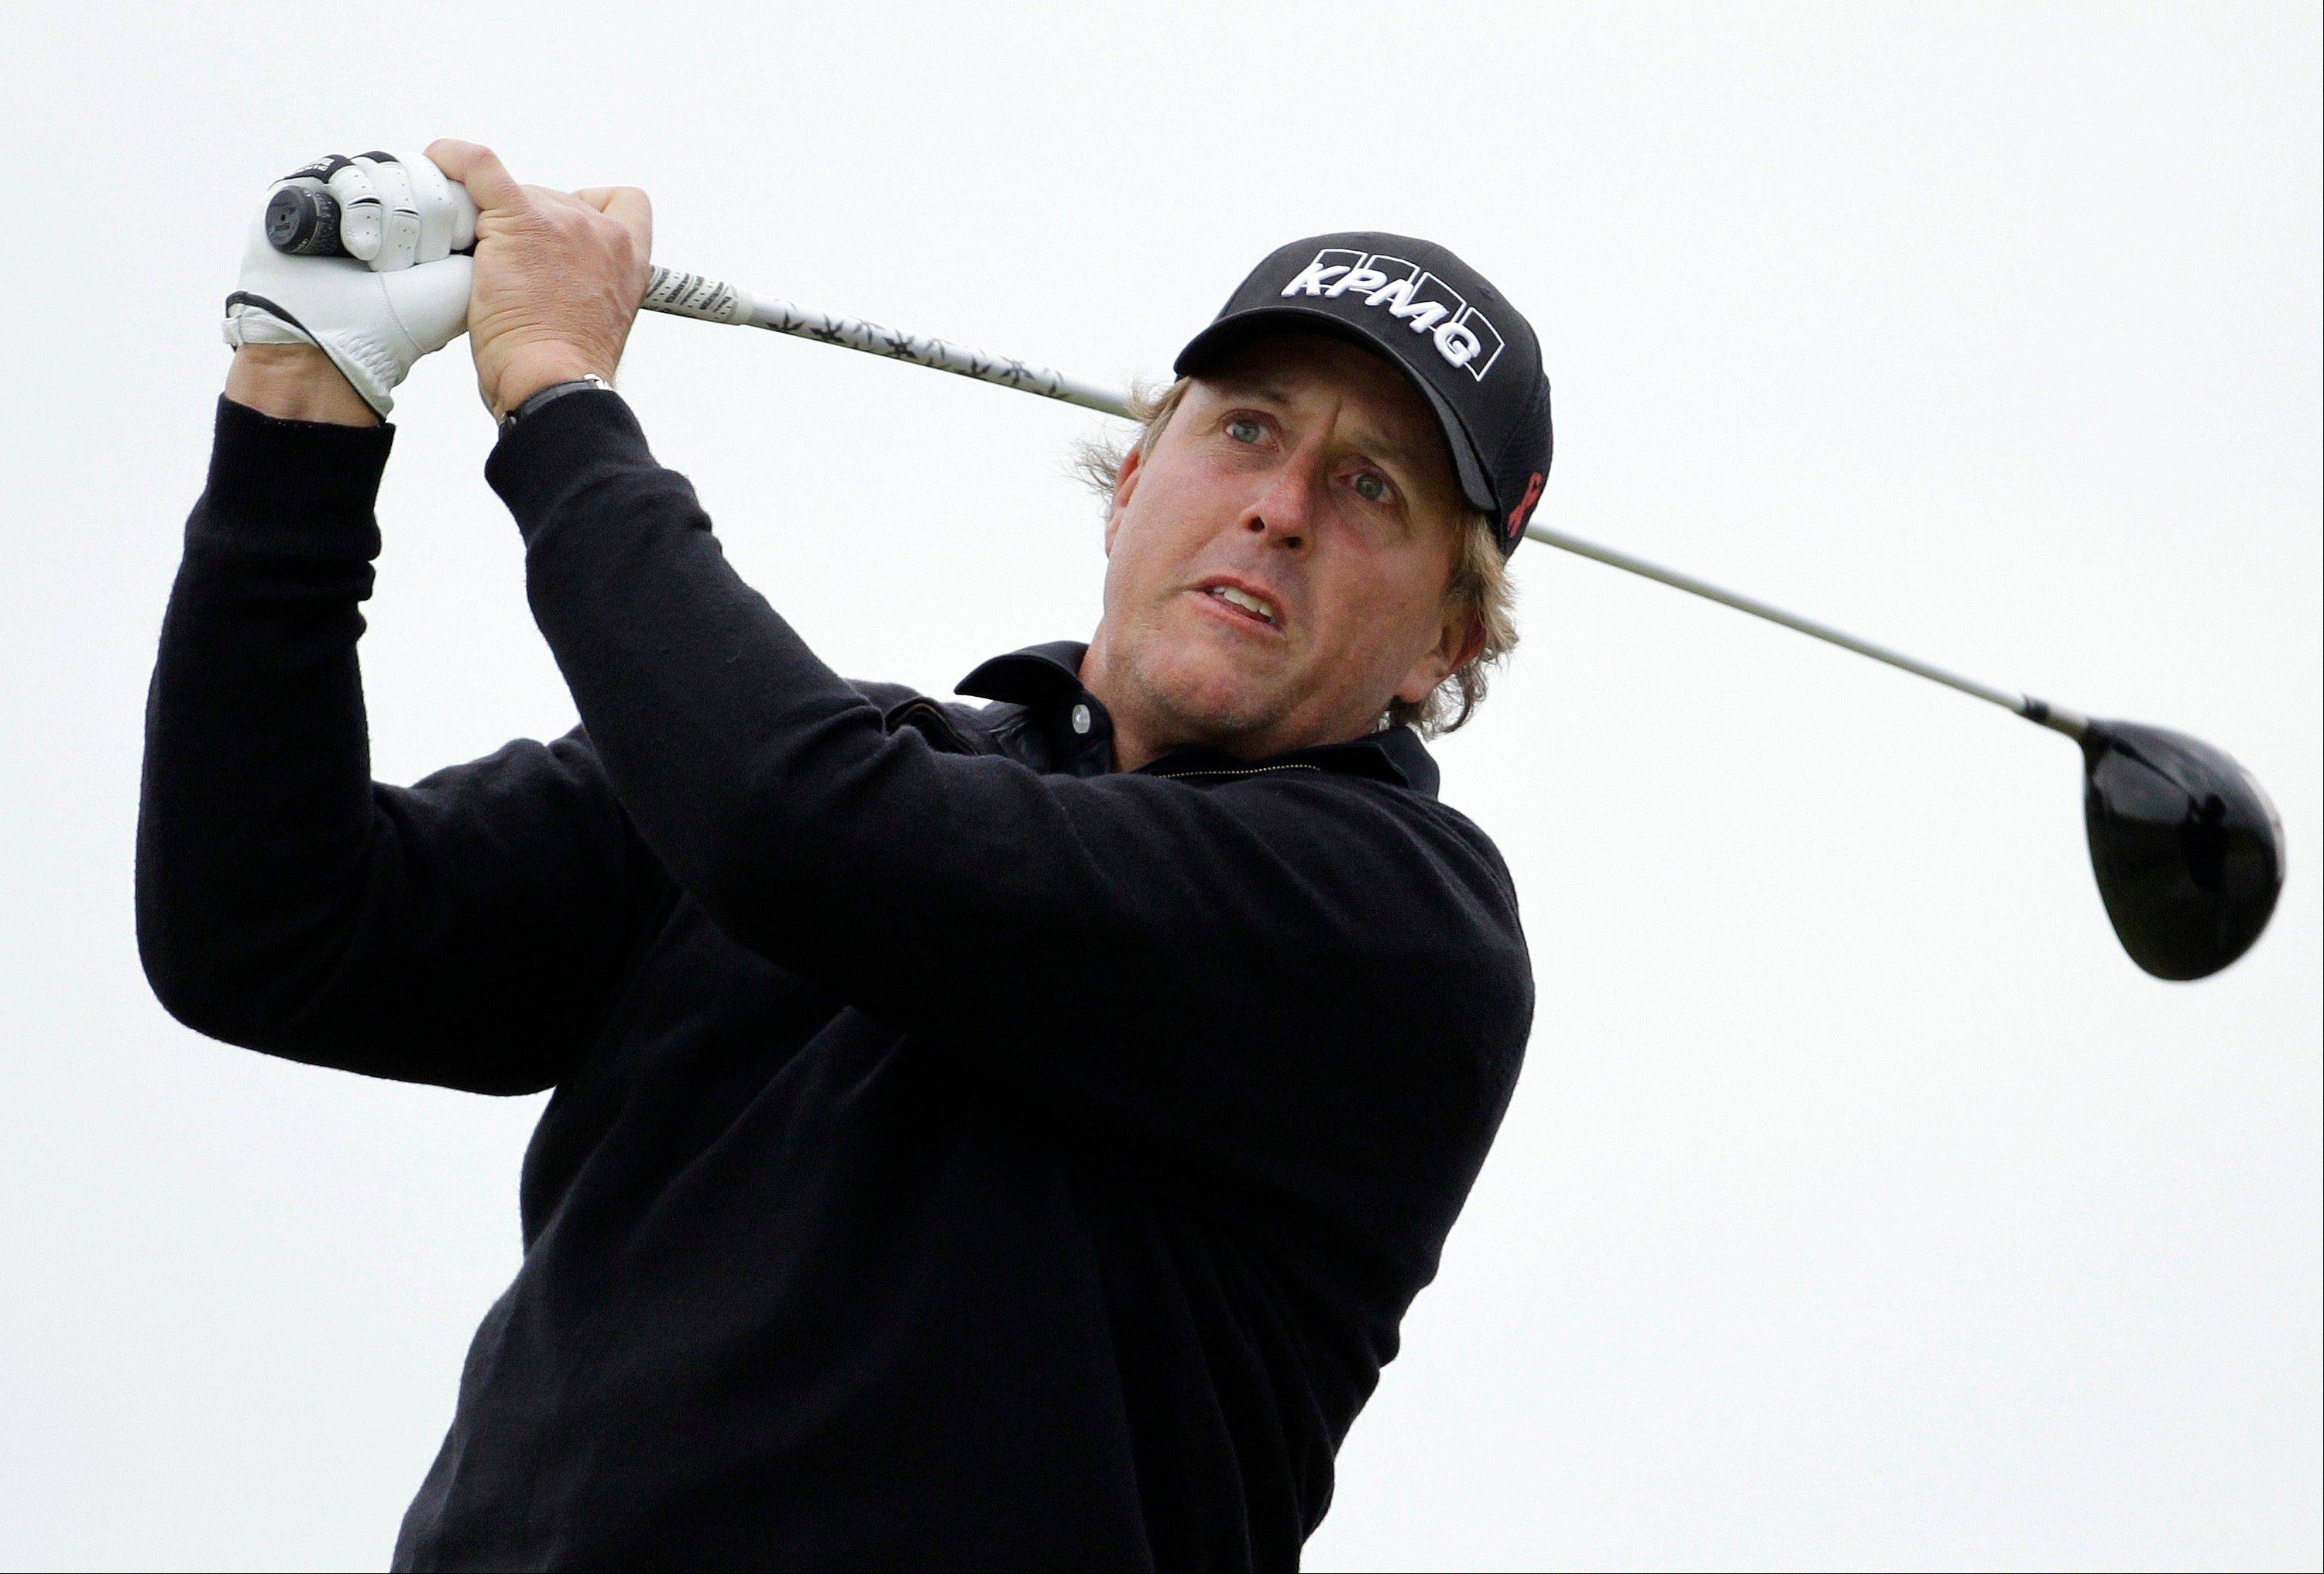 Phil Mickelson was the last American to capture a major championship. He won the 2010 Masters.